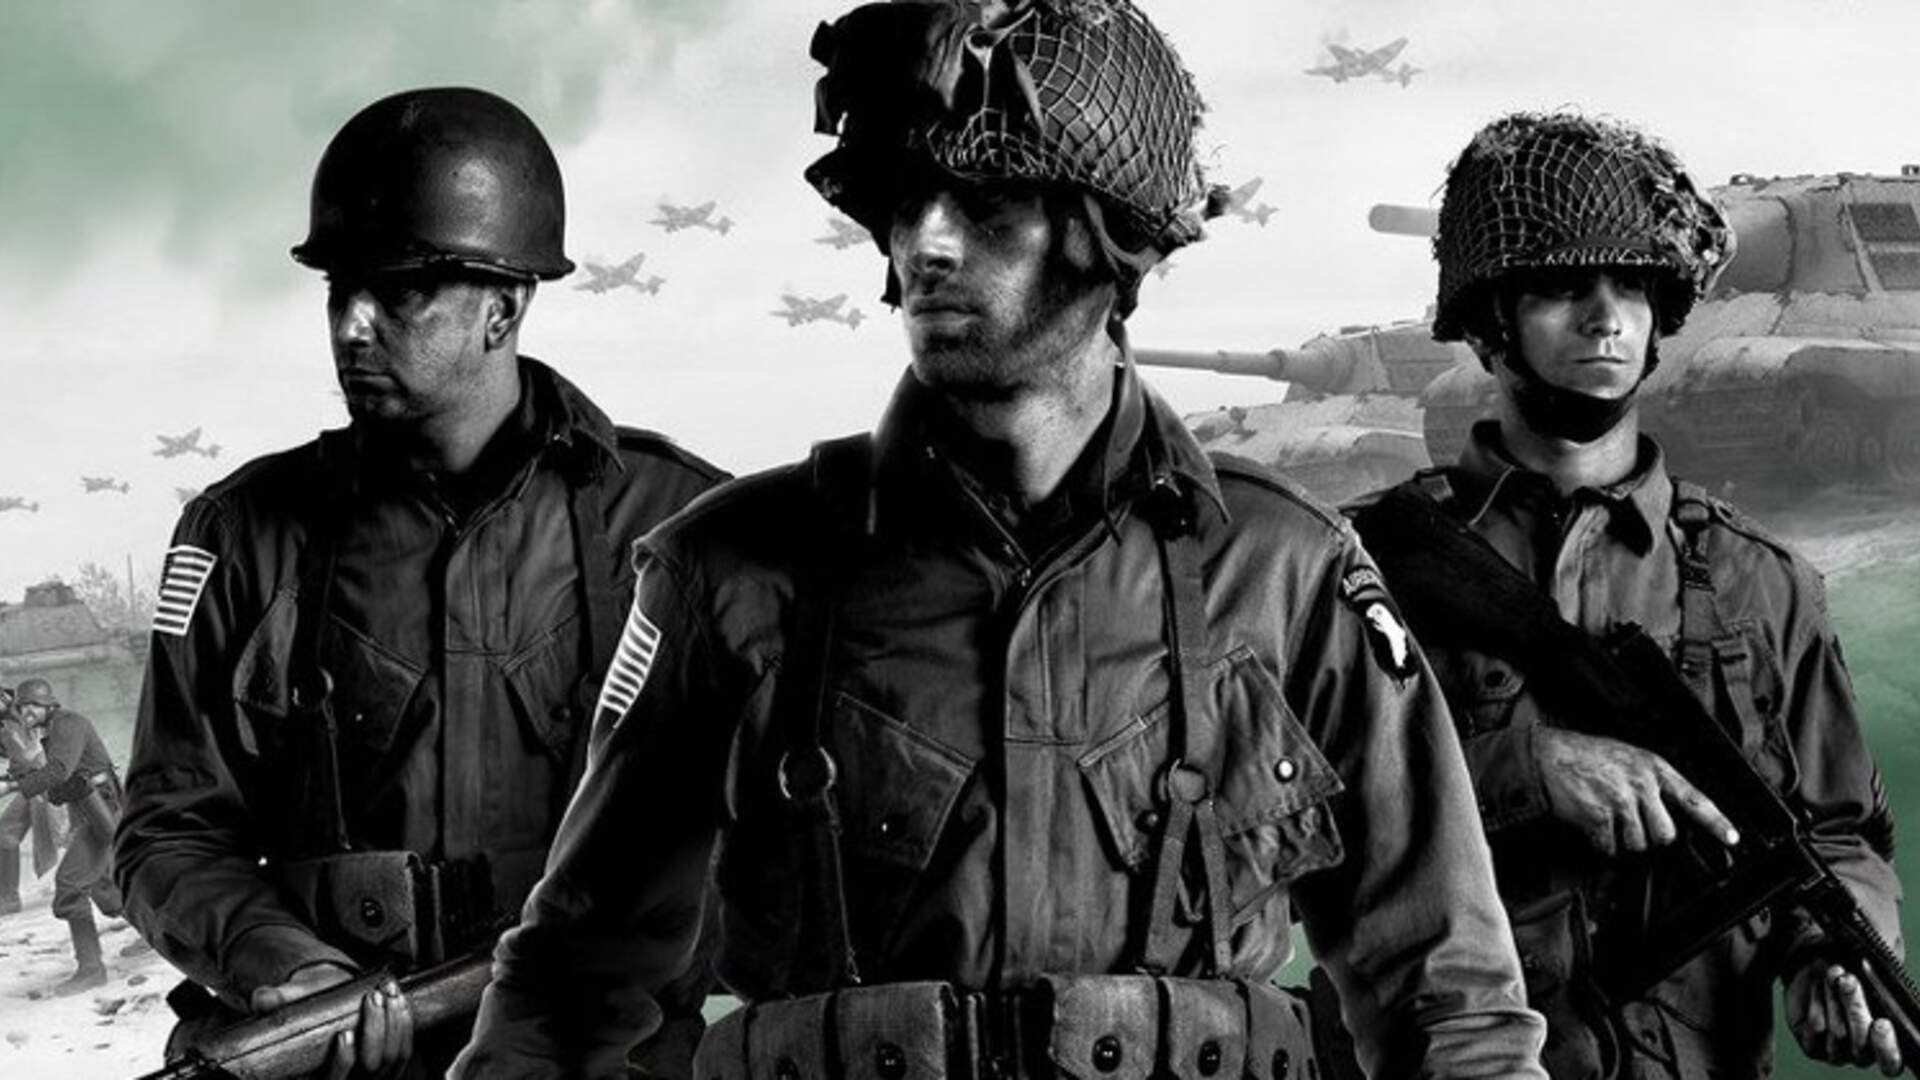 company of heroes 2 ardennes assault pc review - Company of Heroes 2: Ardennes Assault PC Review: Total War